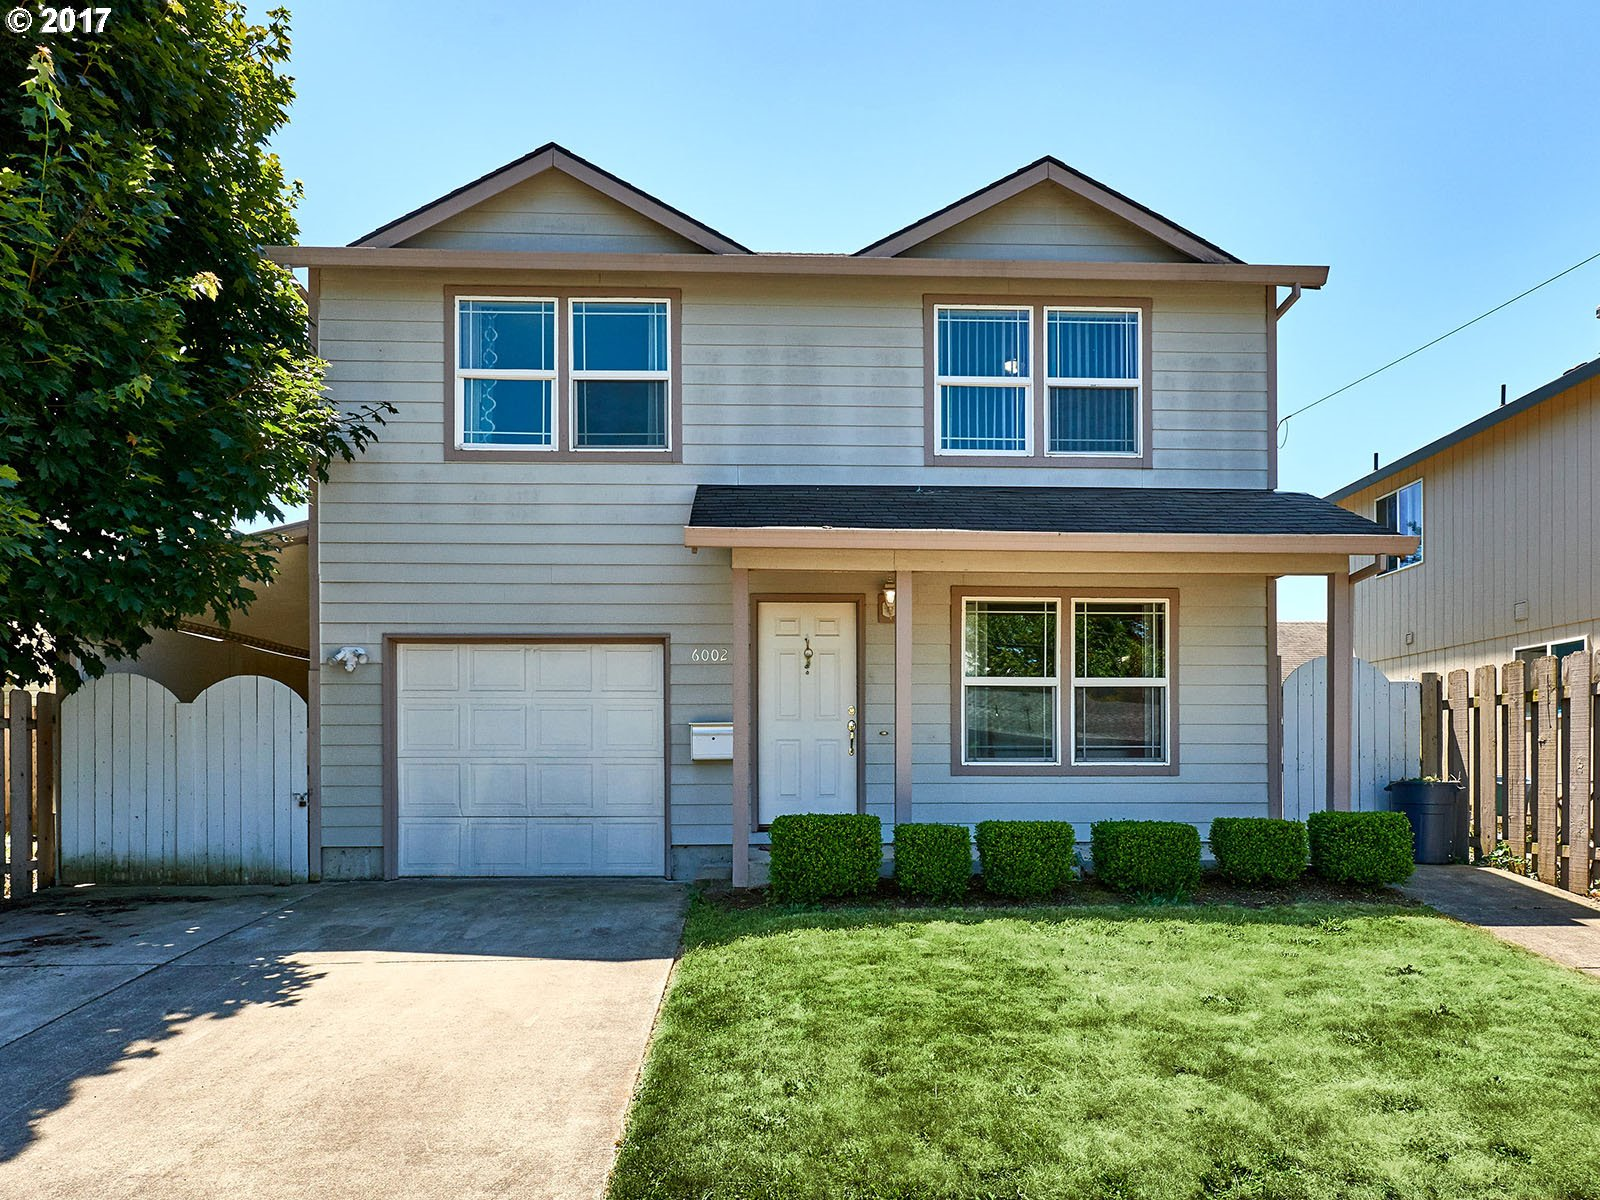 1620 sq. ft 3 bedrooms 2 bathrooms  House For Sale,Portland, OR